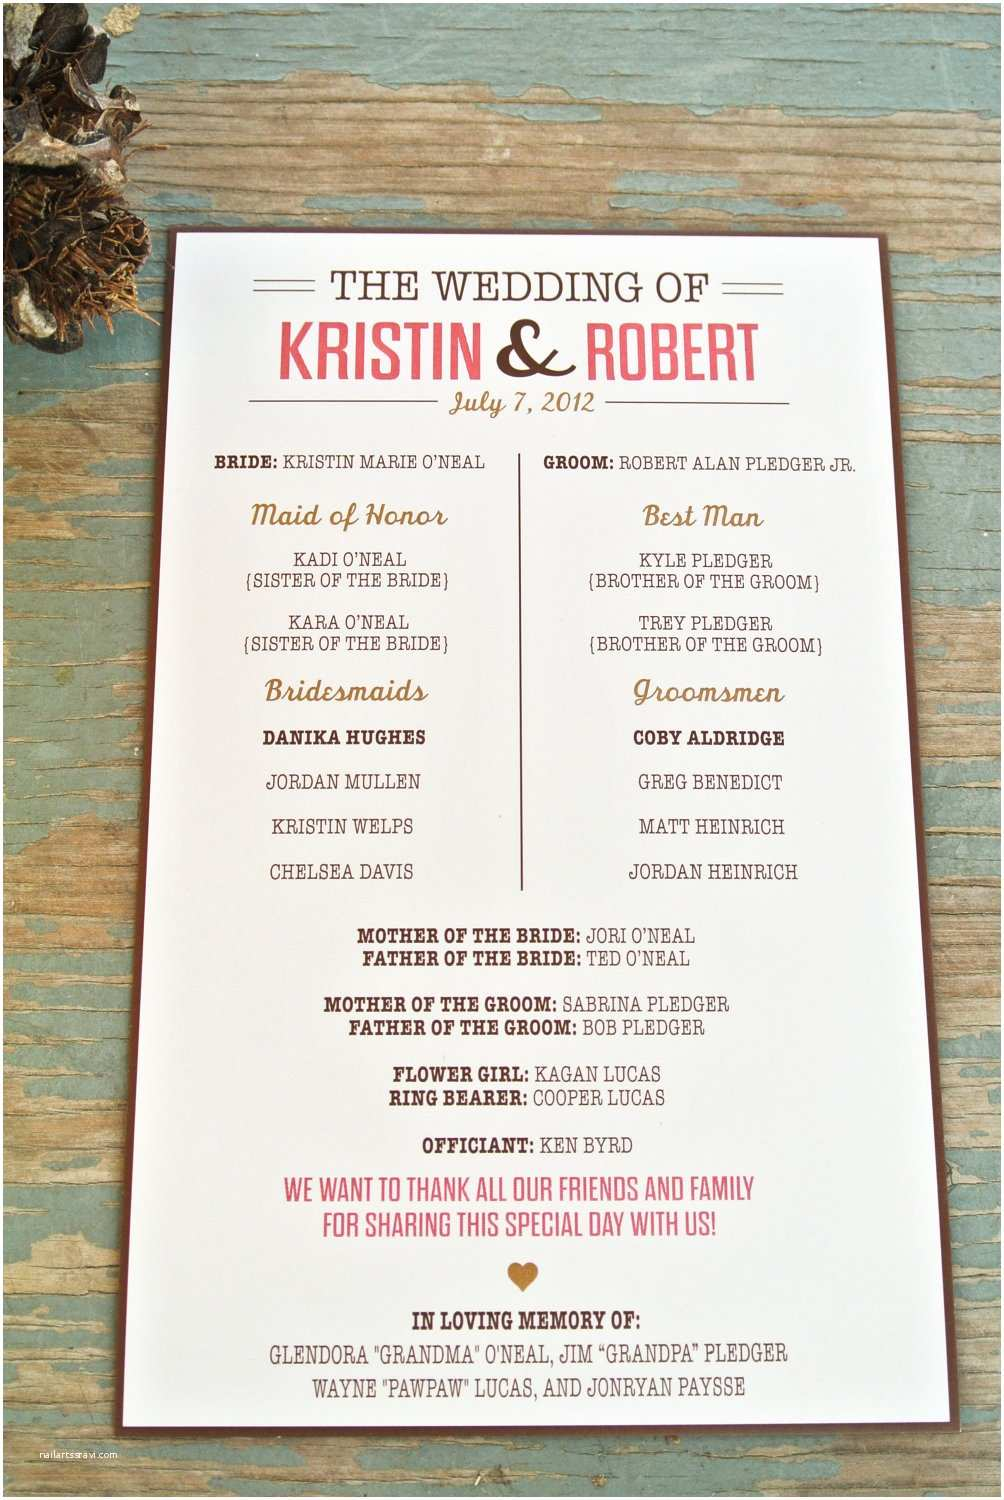 Make Your Own Wedding Invitations software Stunning Make Your Own Wedding Programs S Styles